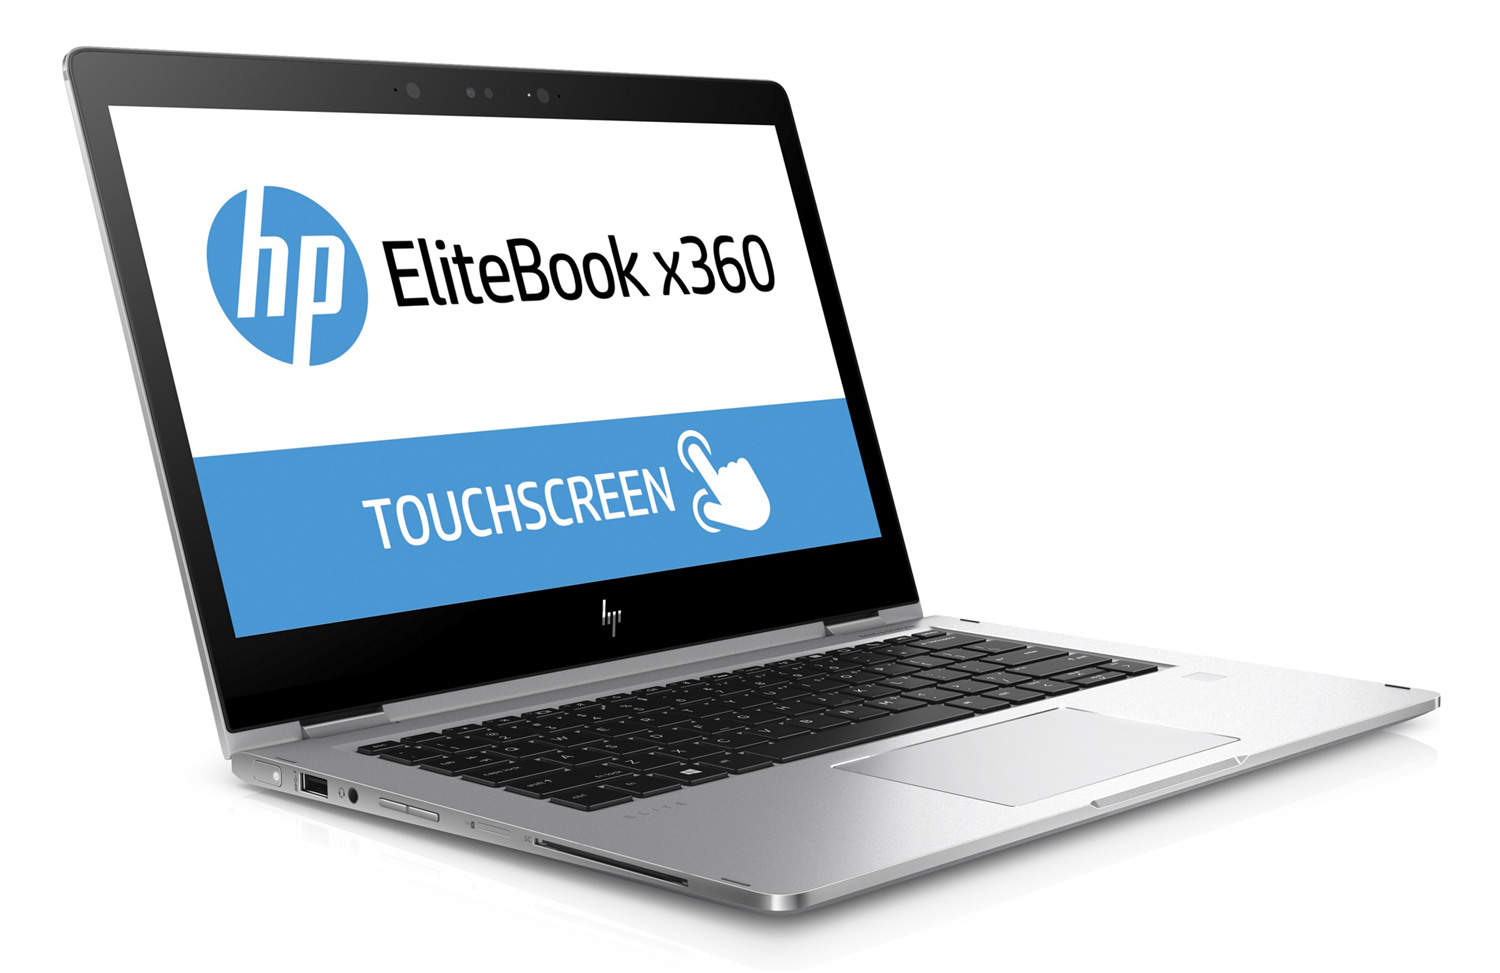 Browse More HP Products; Hp Tablets; Hp Laptops; Hp Printers & Scanner; HP Online Store in Pakistan The Hewlett-Packard Company, or HP, is an American multinational corporation specializing in the information technology sector.